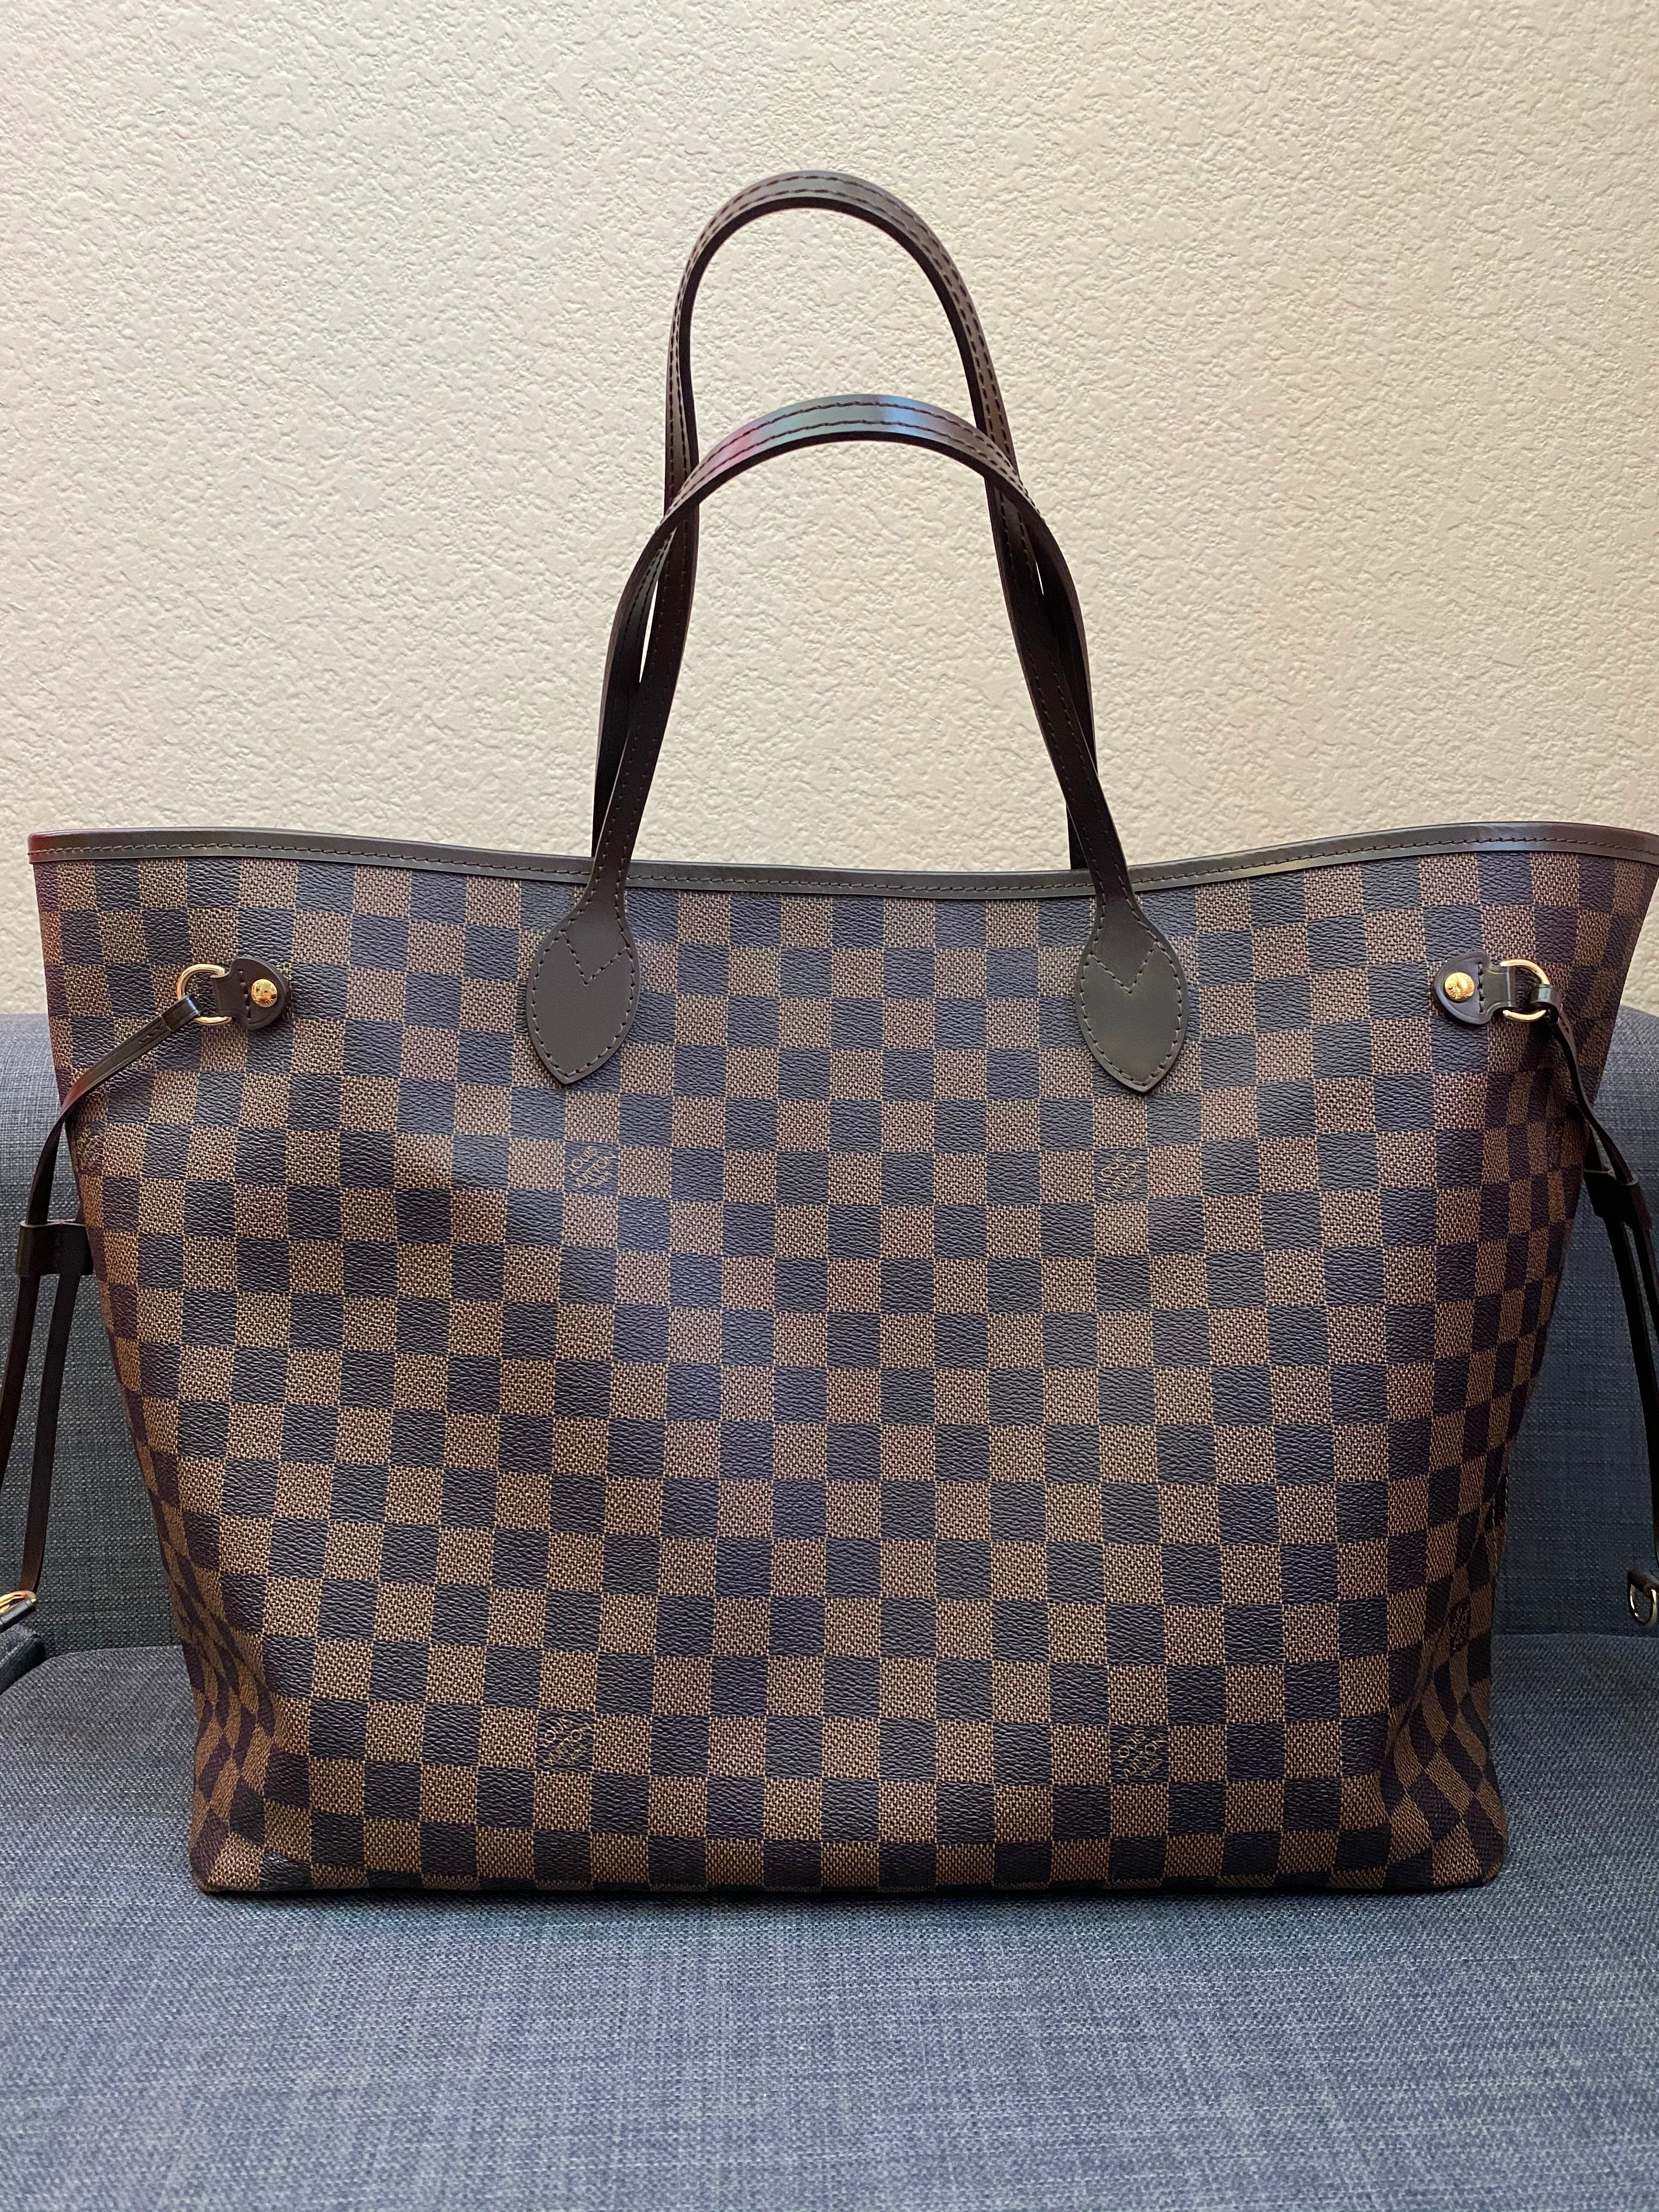 Fake Louis Vuitton Neverfull vs Real: Important Details You Should Definitely Pay Attention To (With Photo Examples) fake neverfull damier ebene